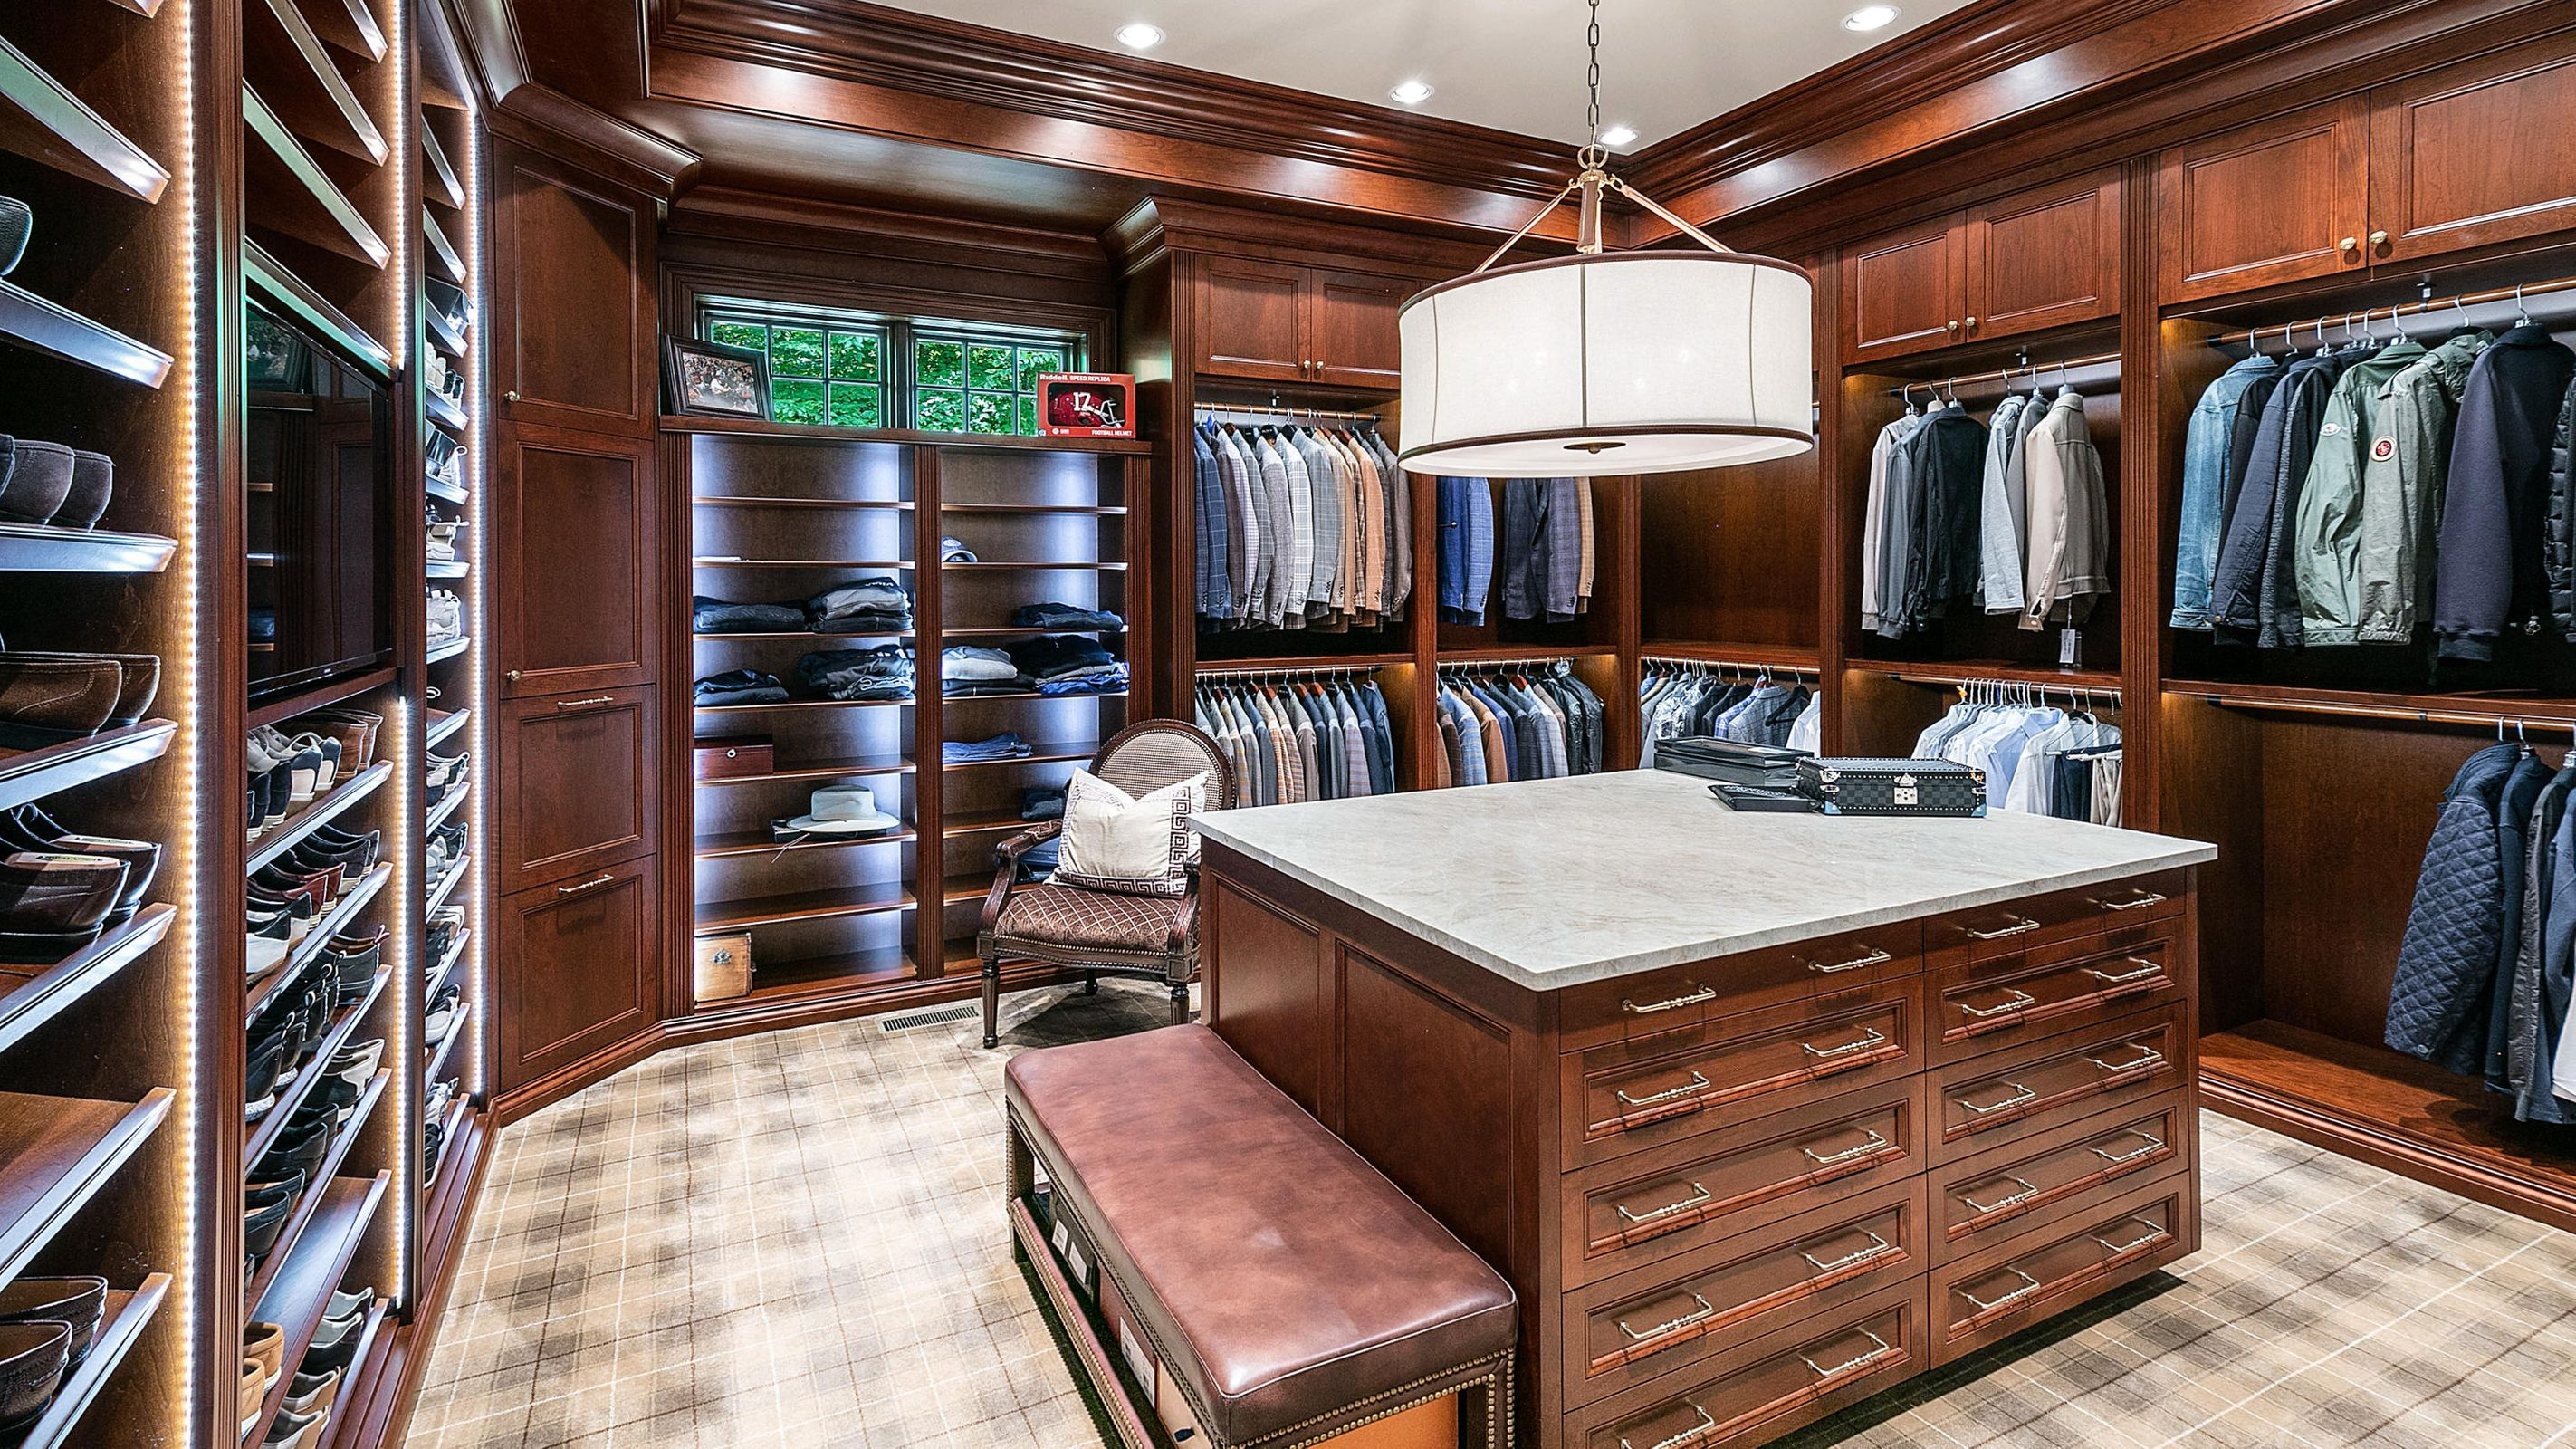 his walk-in closet